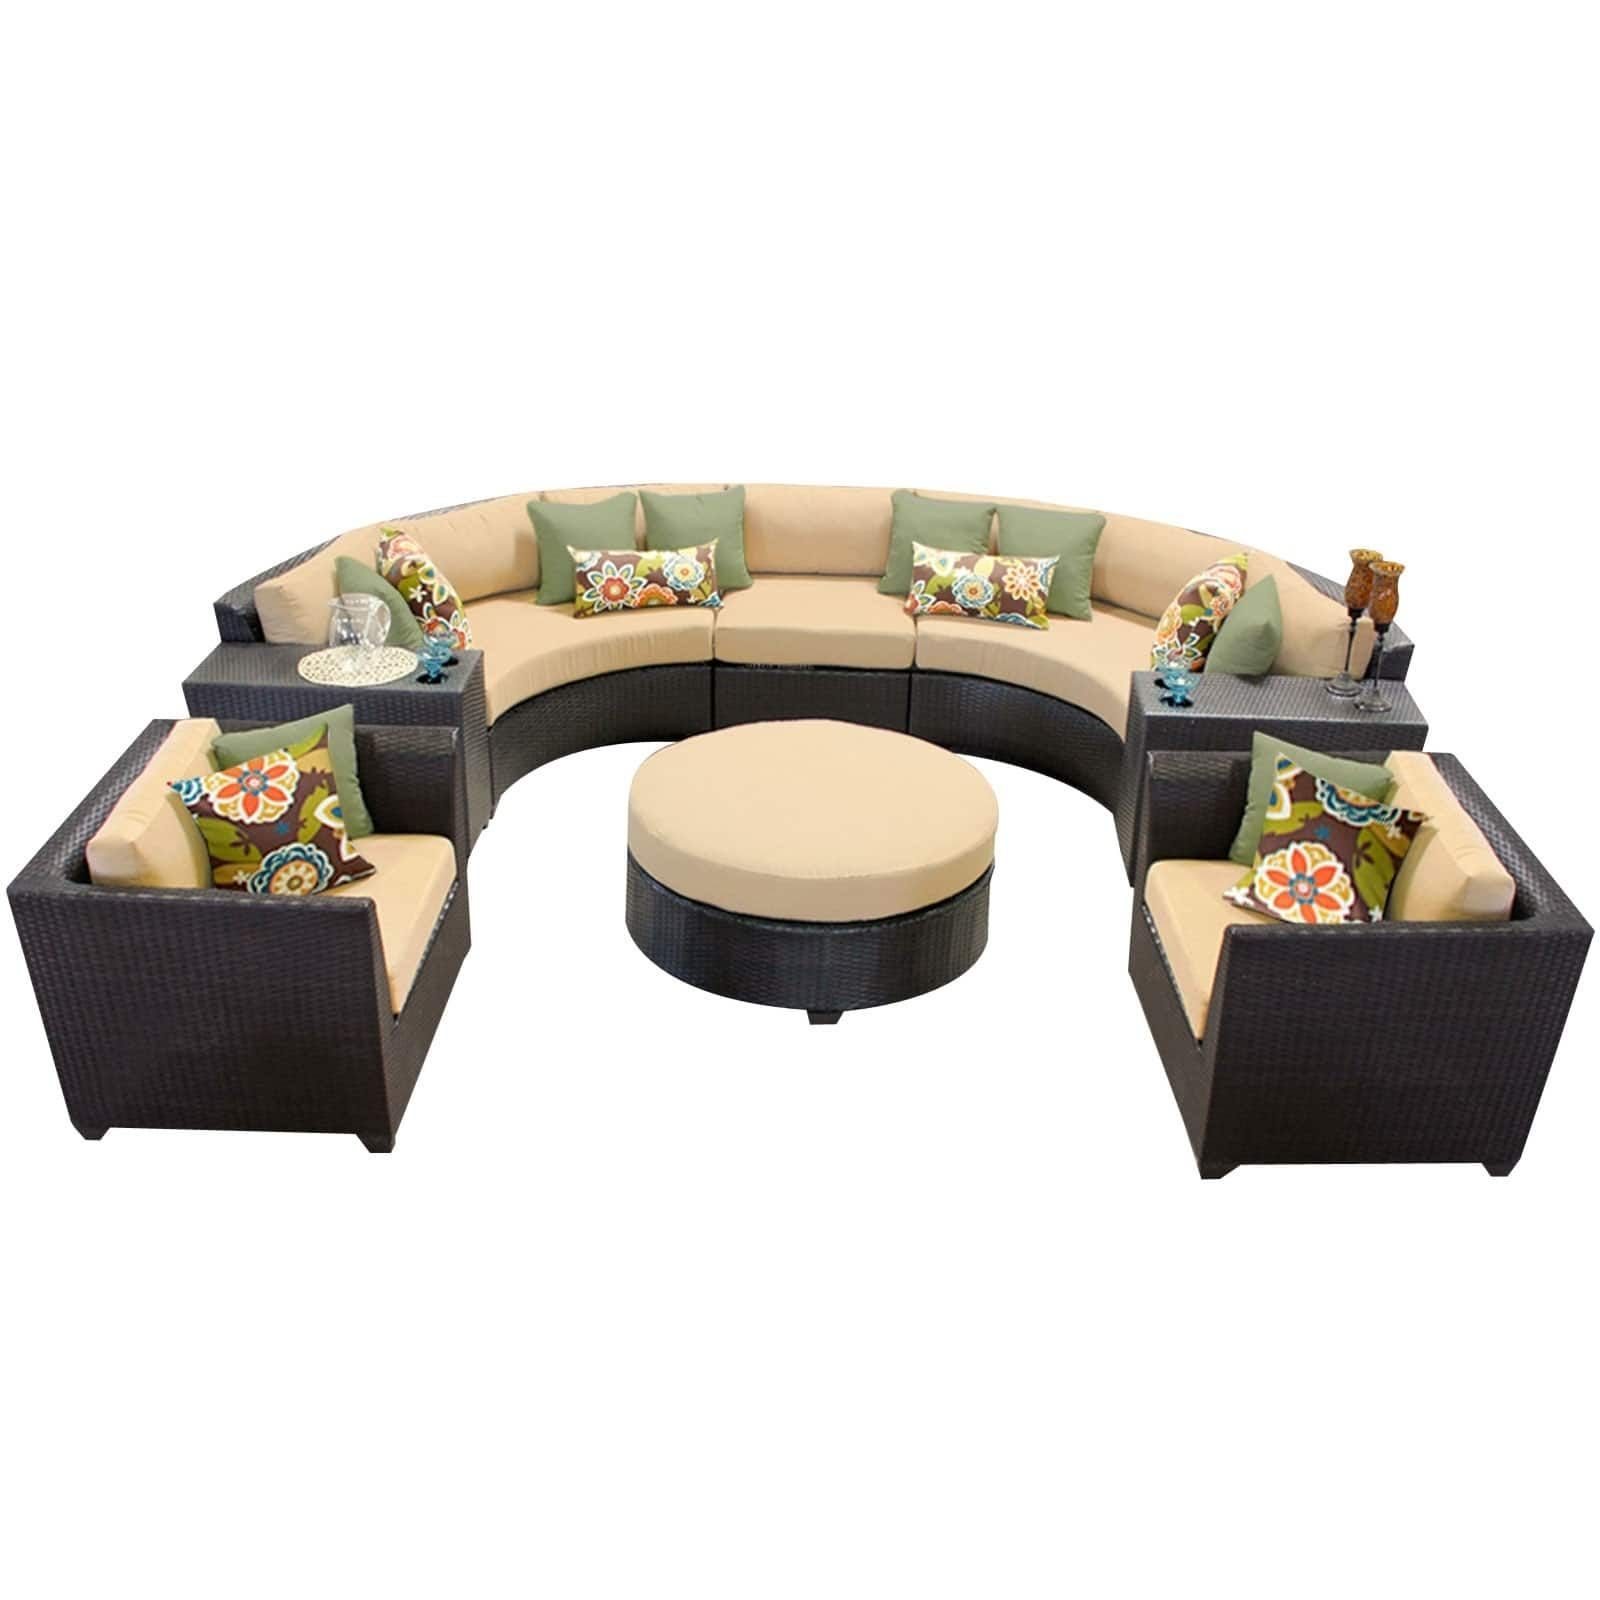 Best Meridian 8 Piece Outdoor Patio Rounded Wicker Sectional 400 x 300